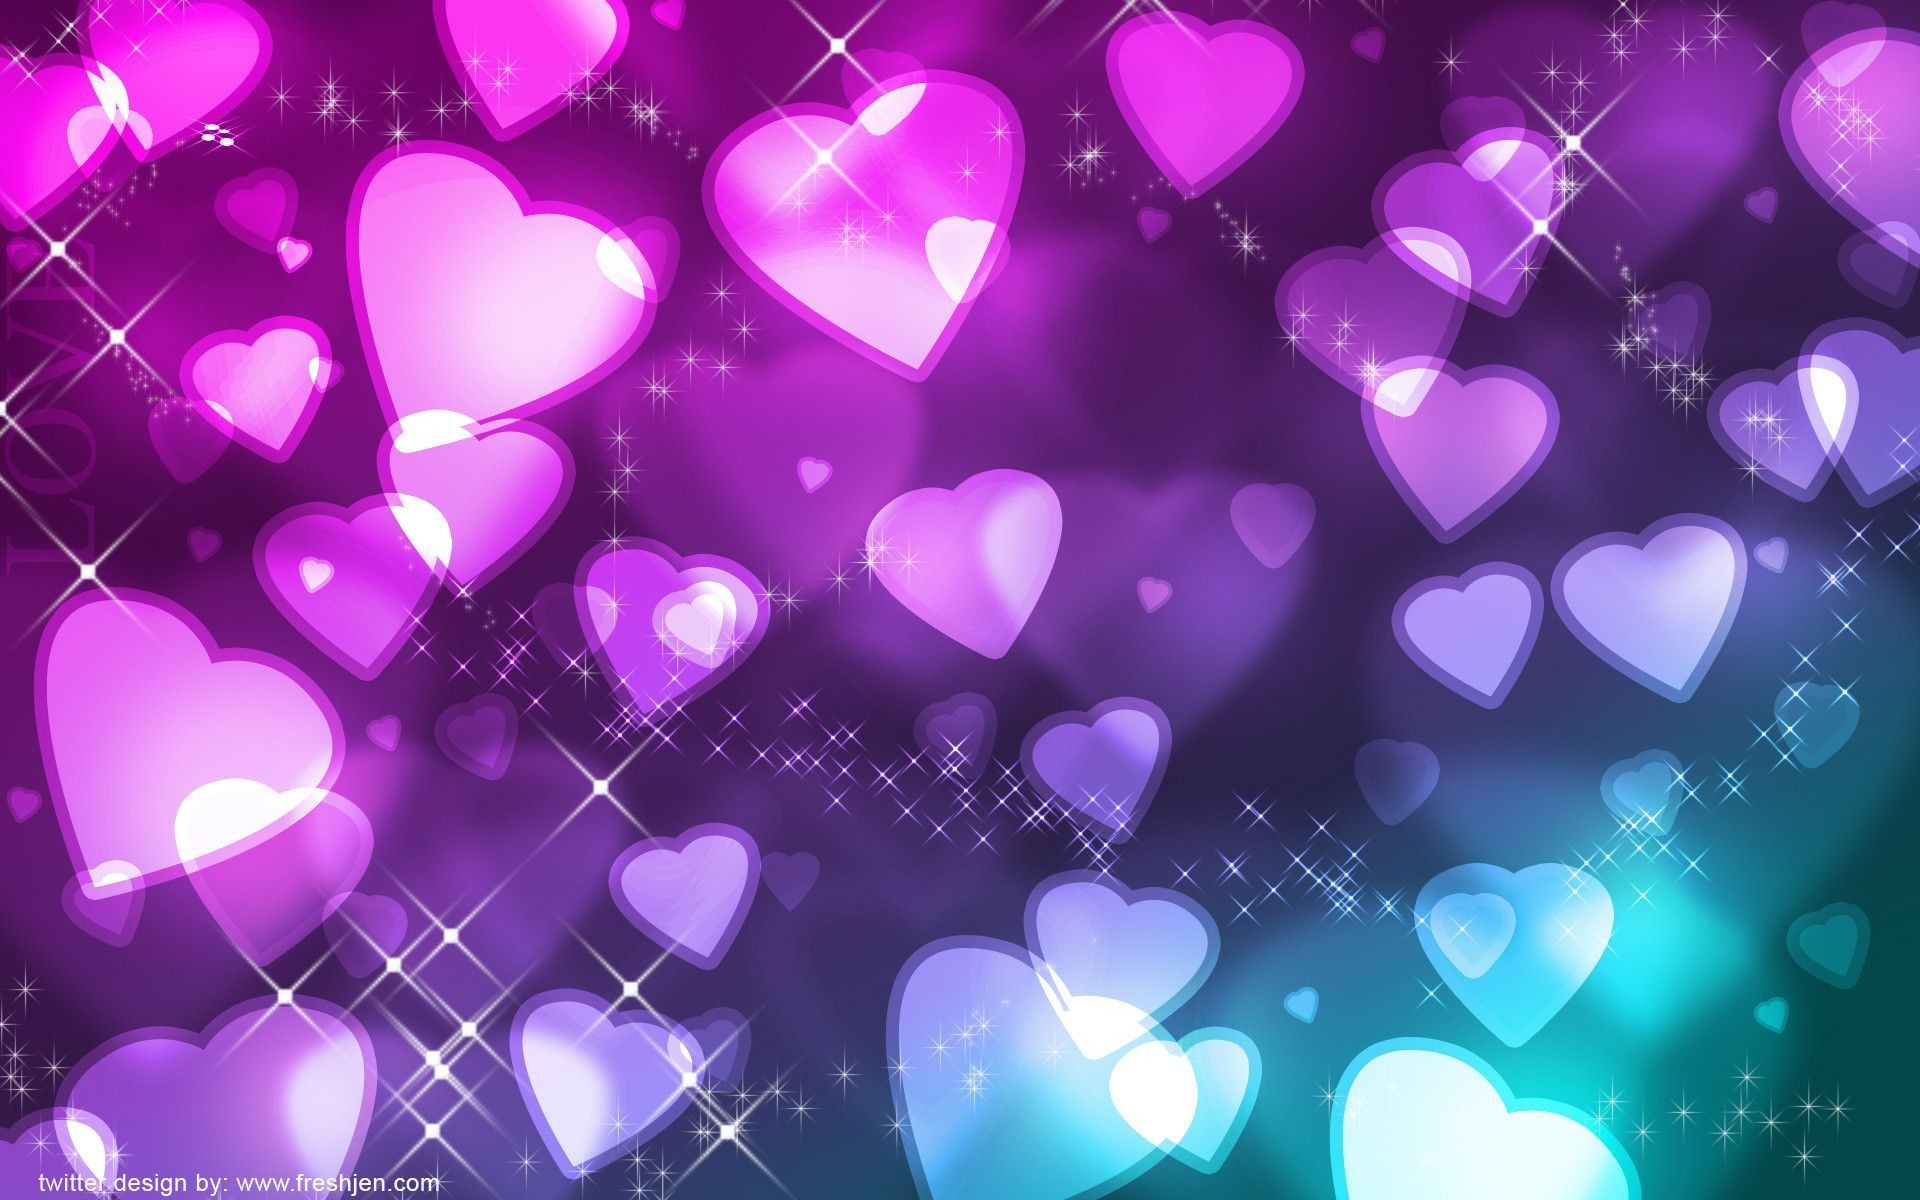 1920x1200 Love Heart Wallpapers HD Wallpaper 1920×1200 Hearts Wallpaper (37 Wallpapers)  | Adorable Wallpapers